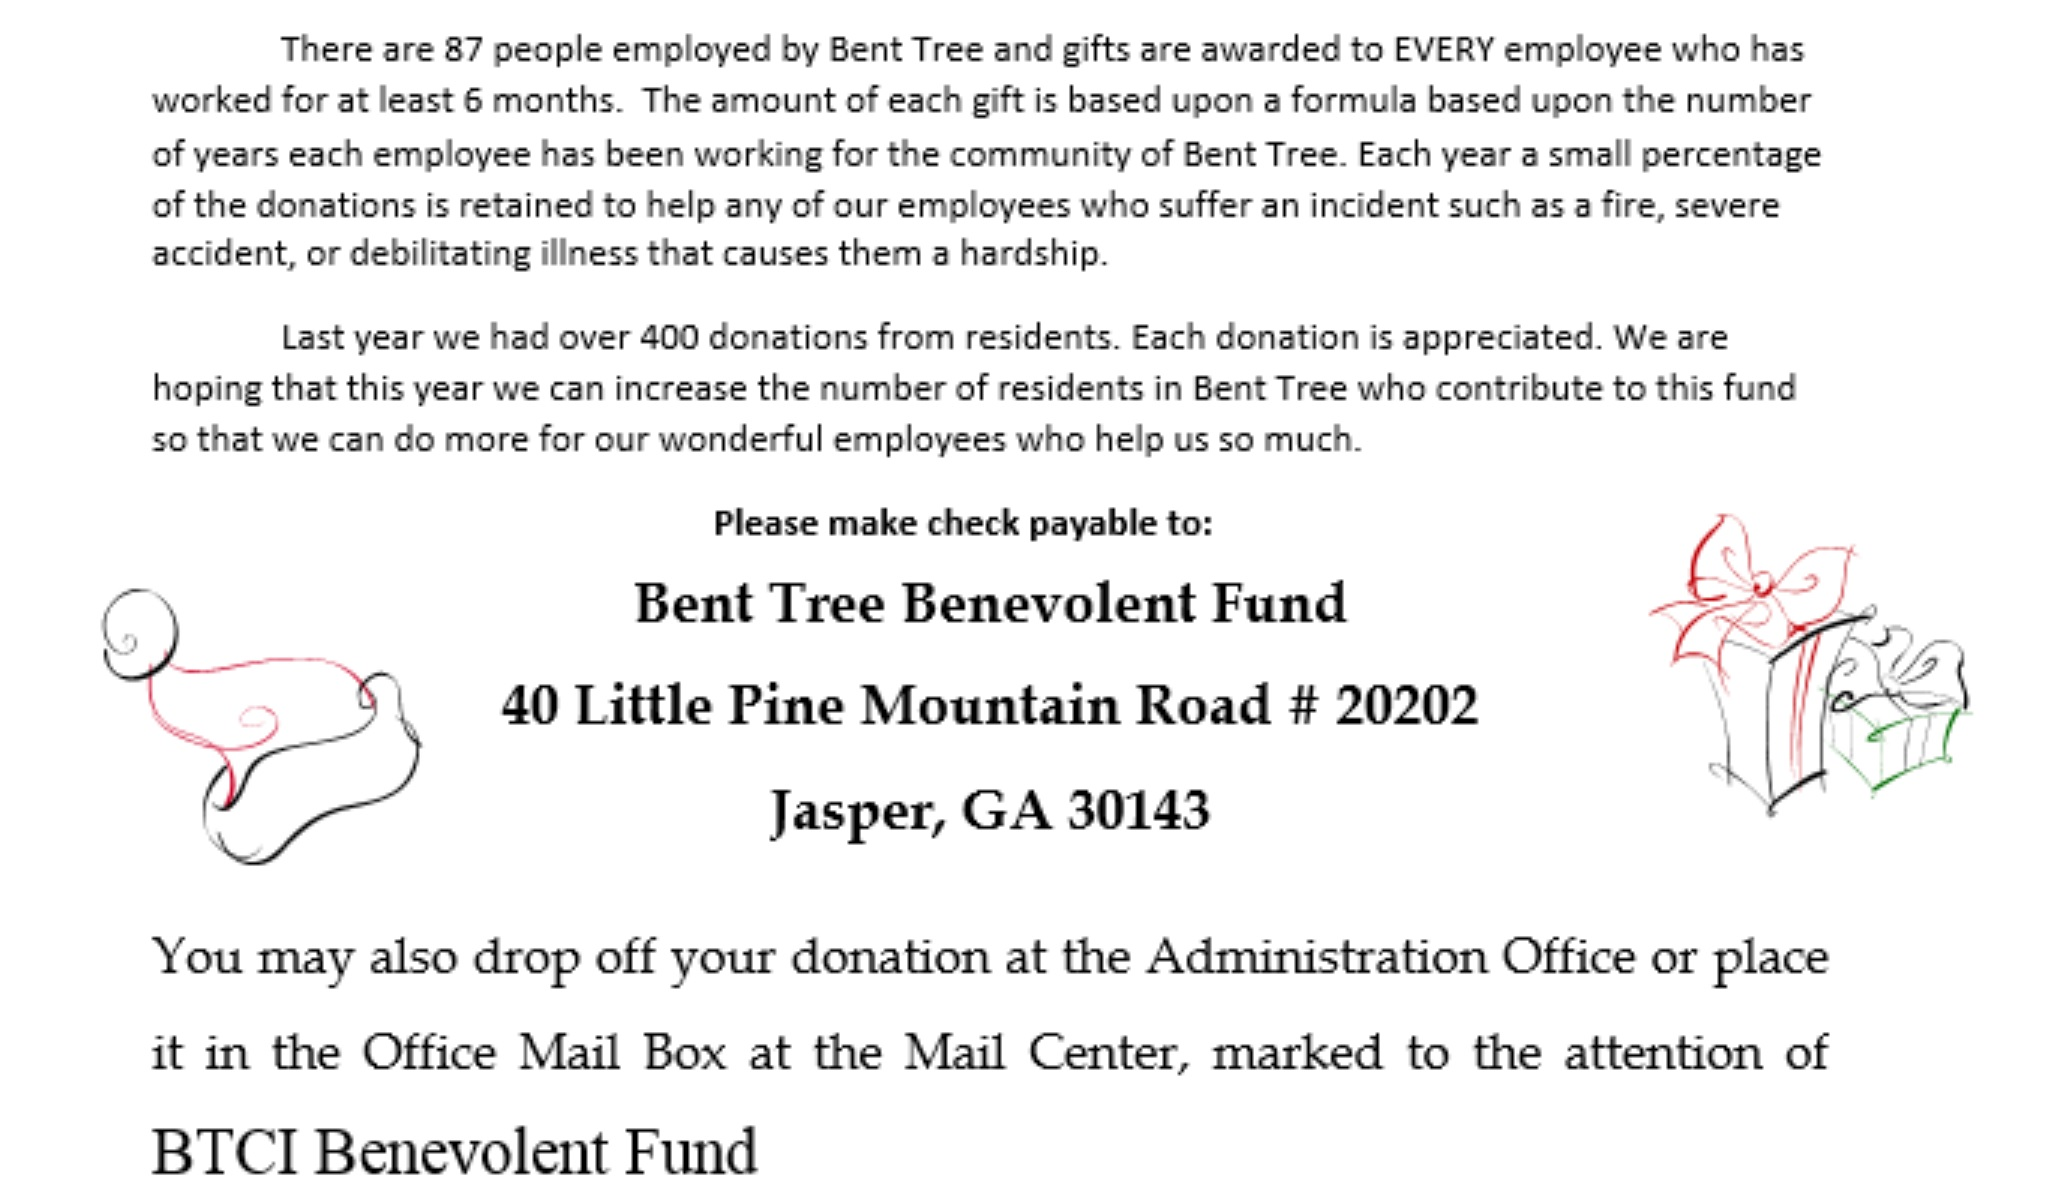 2019 Bent Tree Benevolent Fund